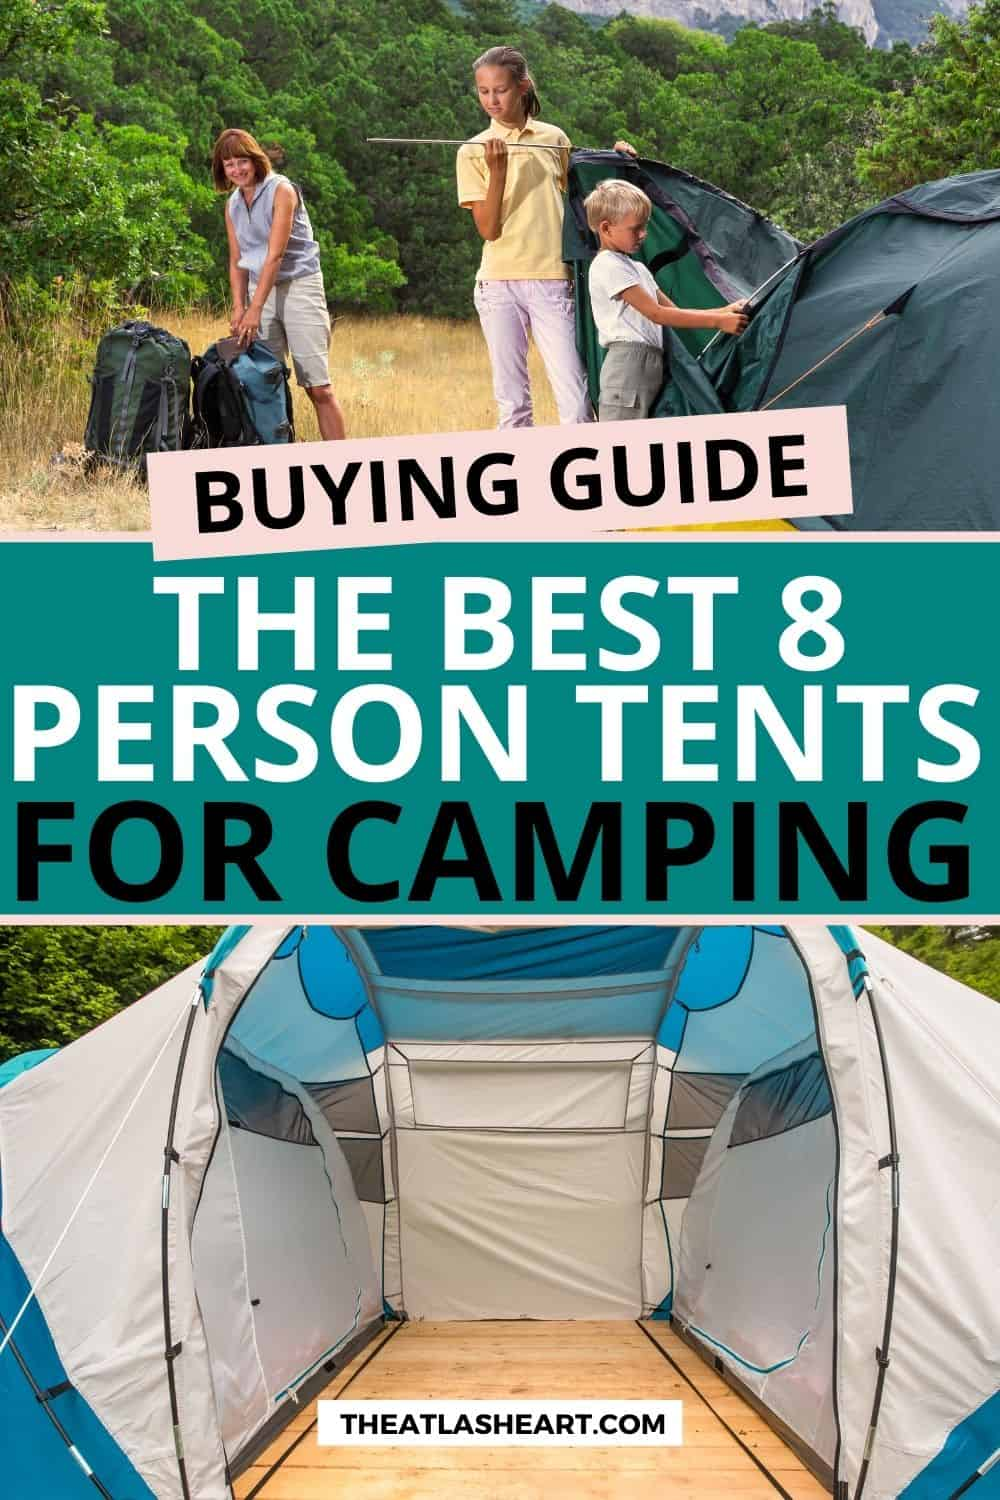 Best 8 Person Tent for Family-Style Camping (2021 Buying Guide)